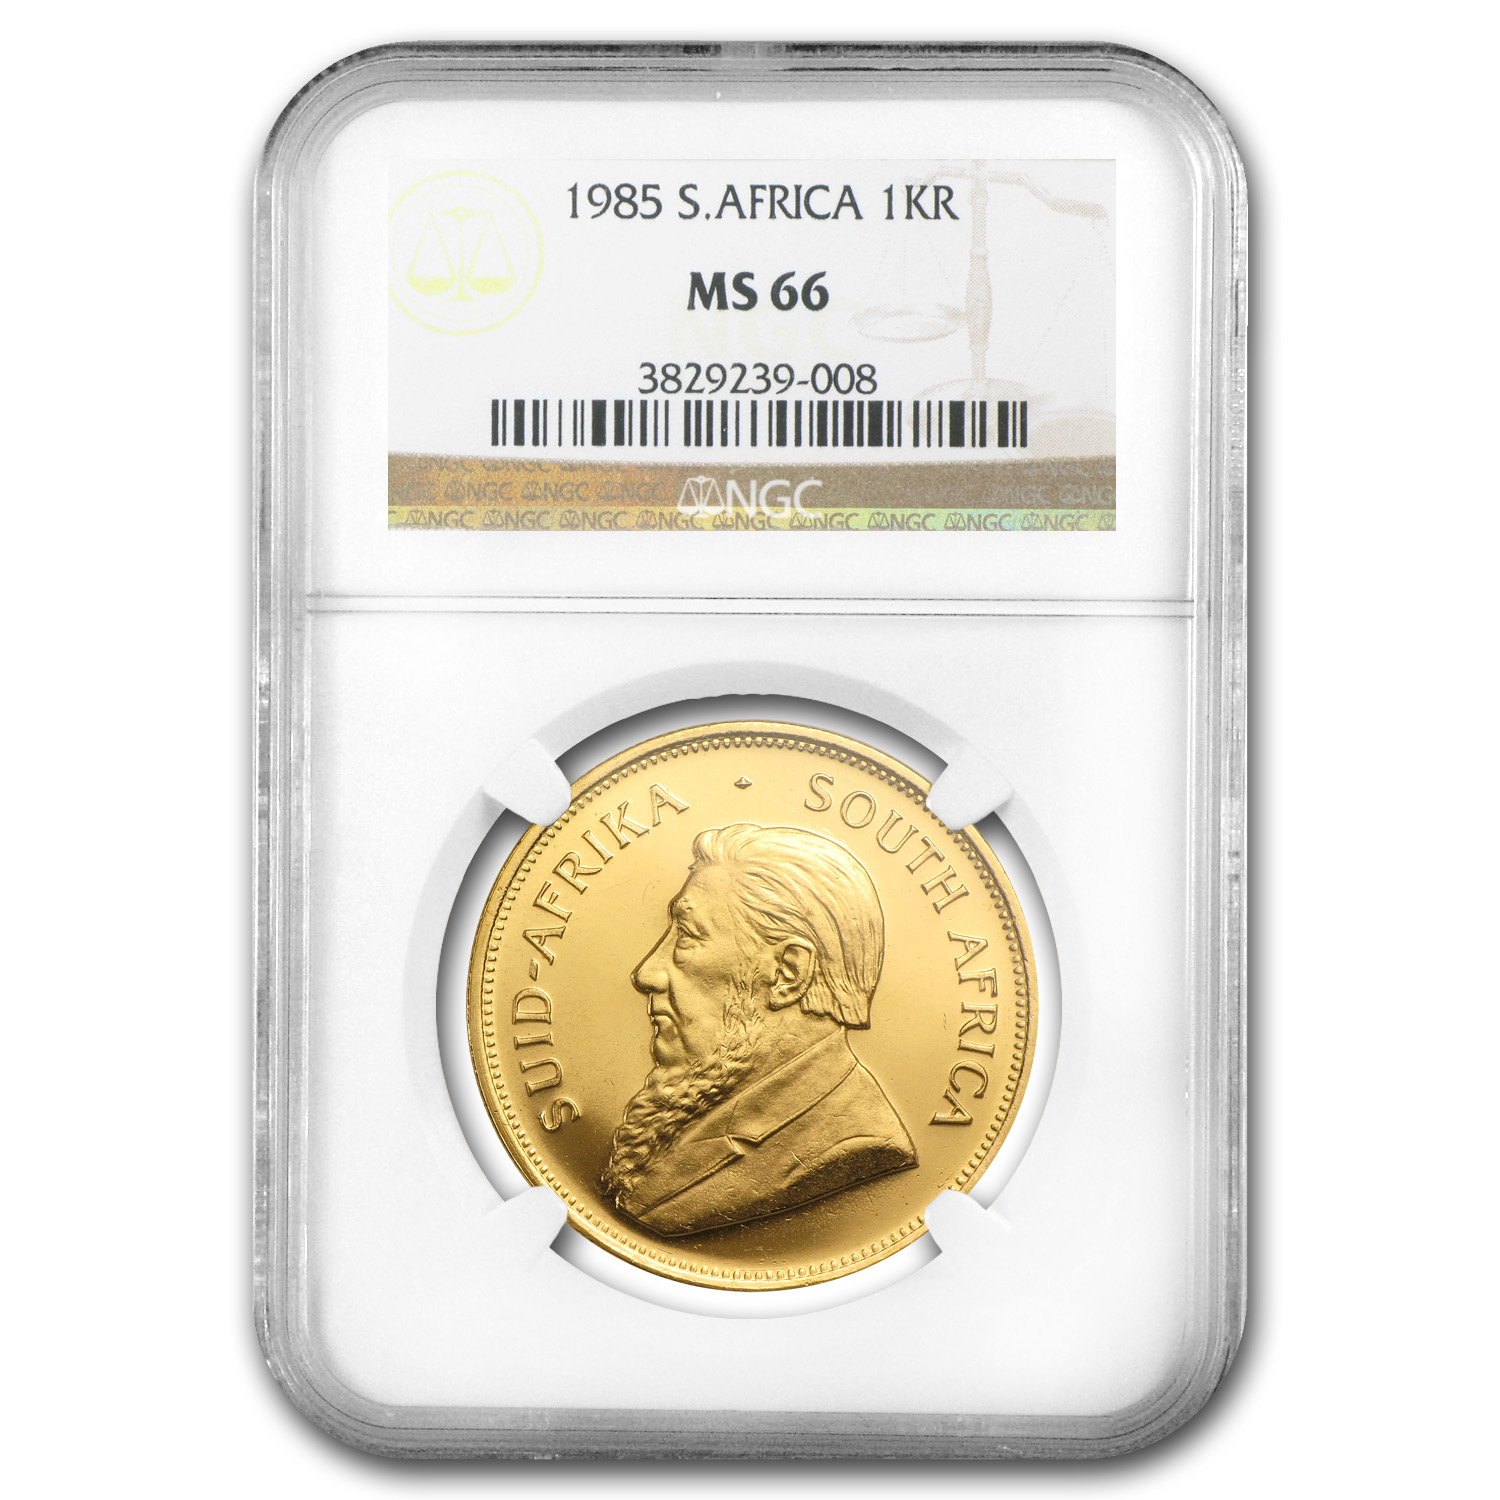 1985 1 oz Gold South African Krugerrand MS-66 NGC